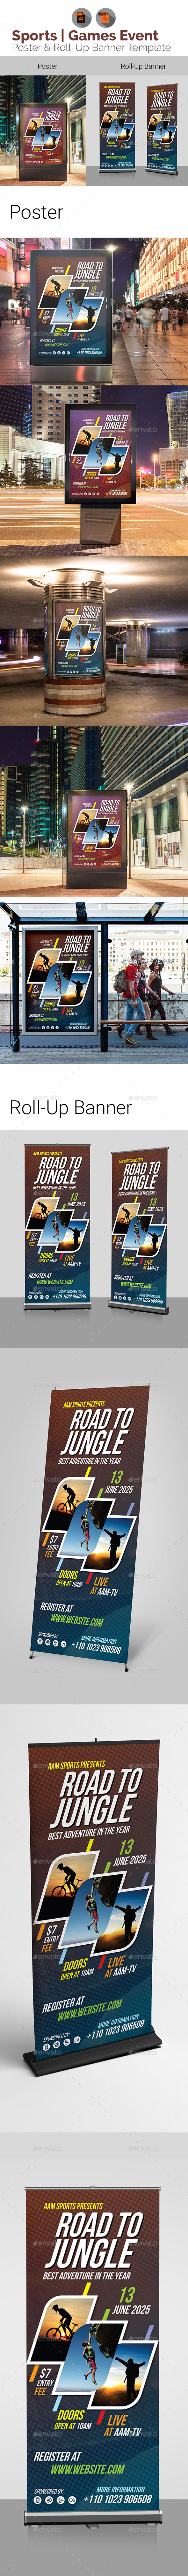 Sports Signage Bundle - Signage Print Templates